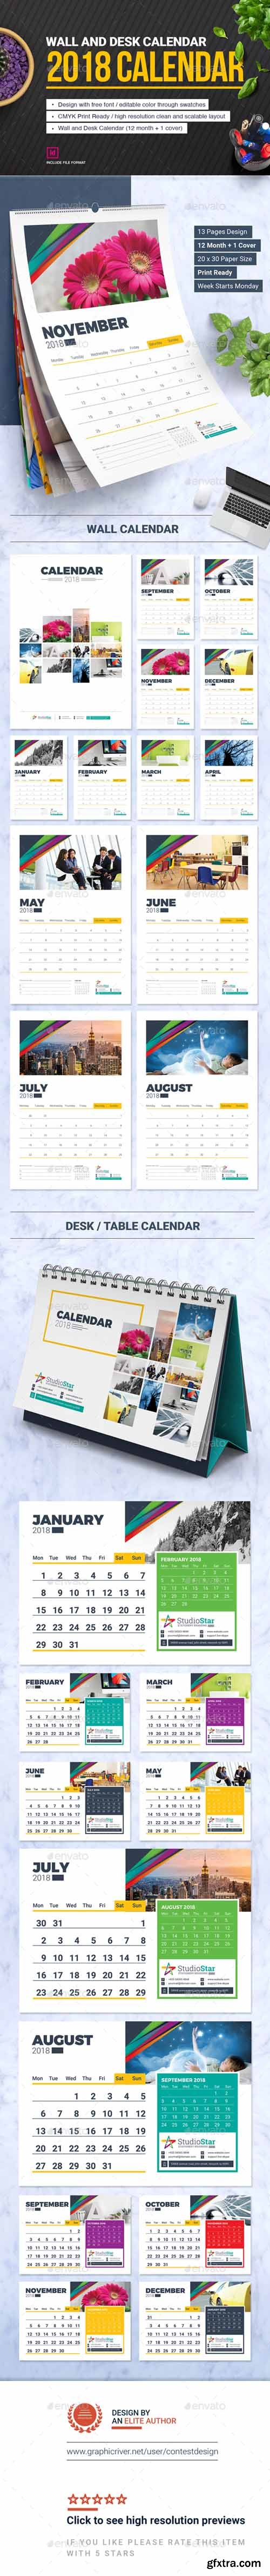 Gr 2018 Calendar Design Template Wall And Desk Table Calendar